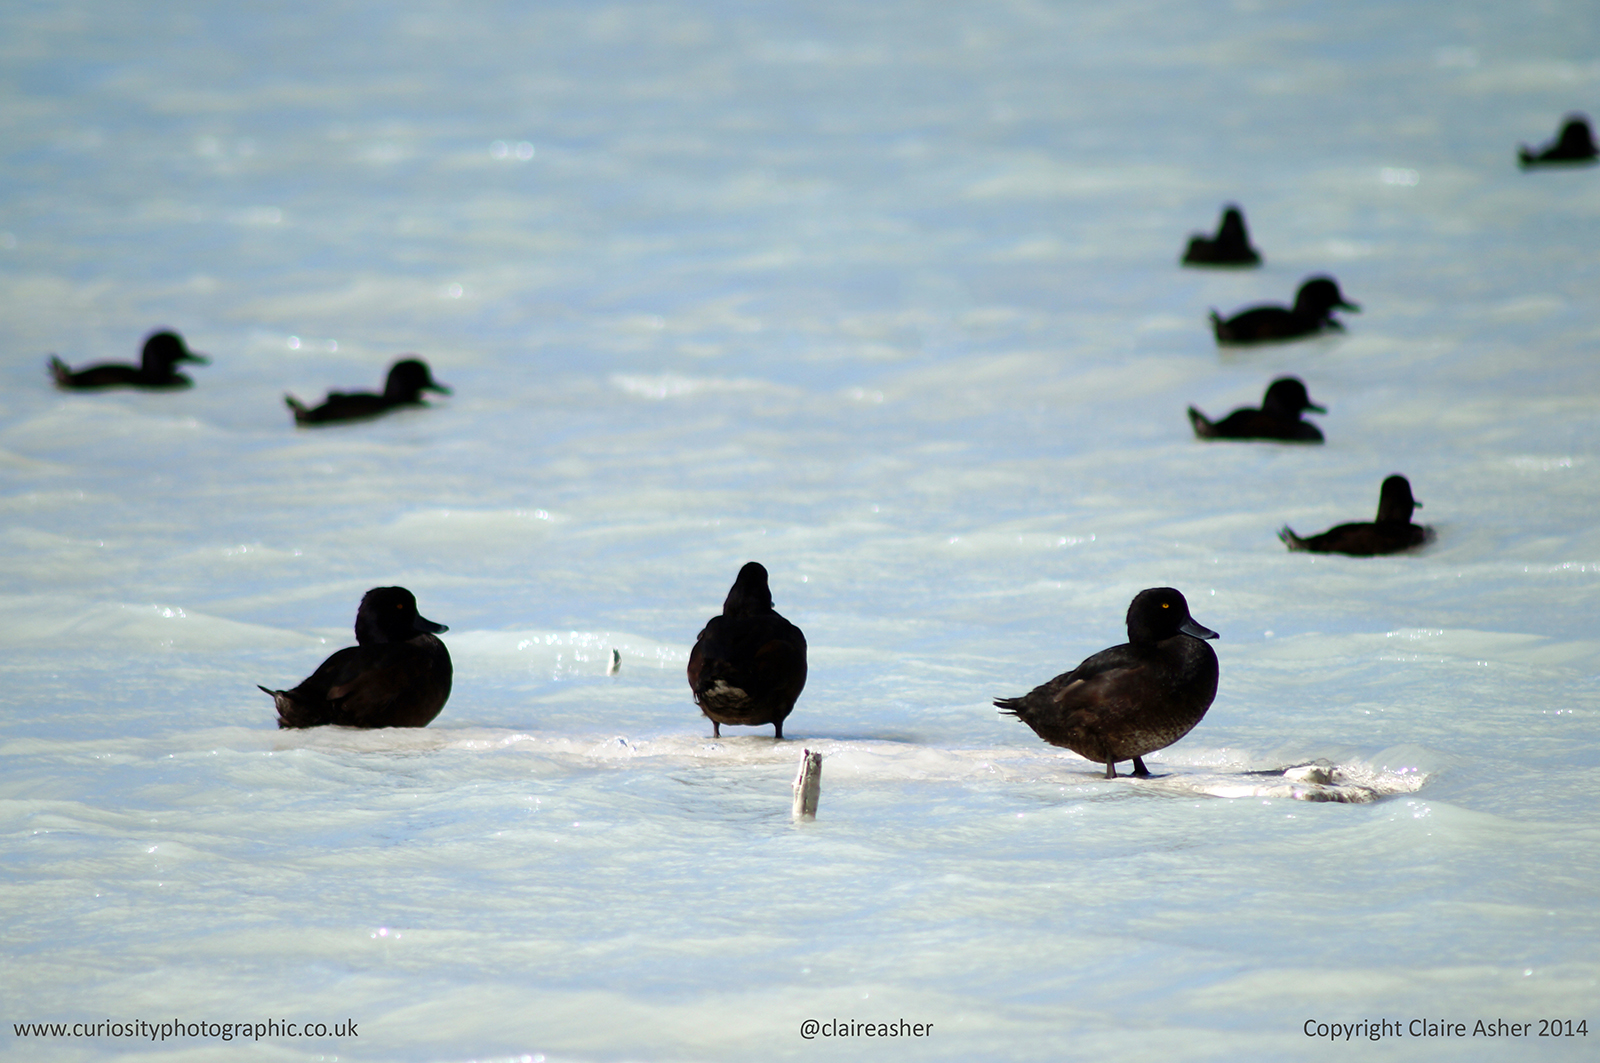 Birds photographed in Rotorua, New Zealand in 2014